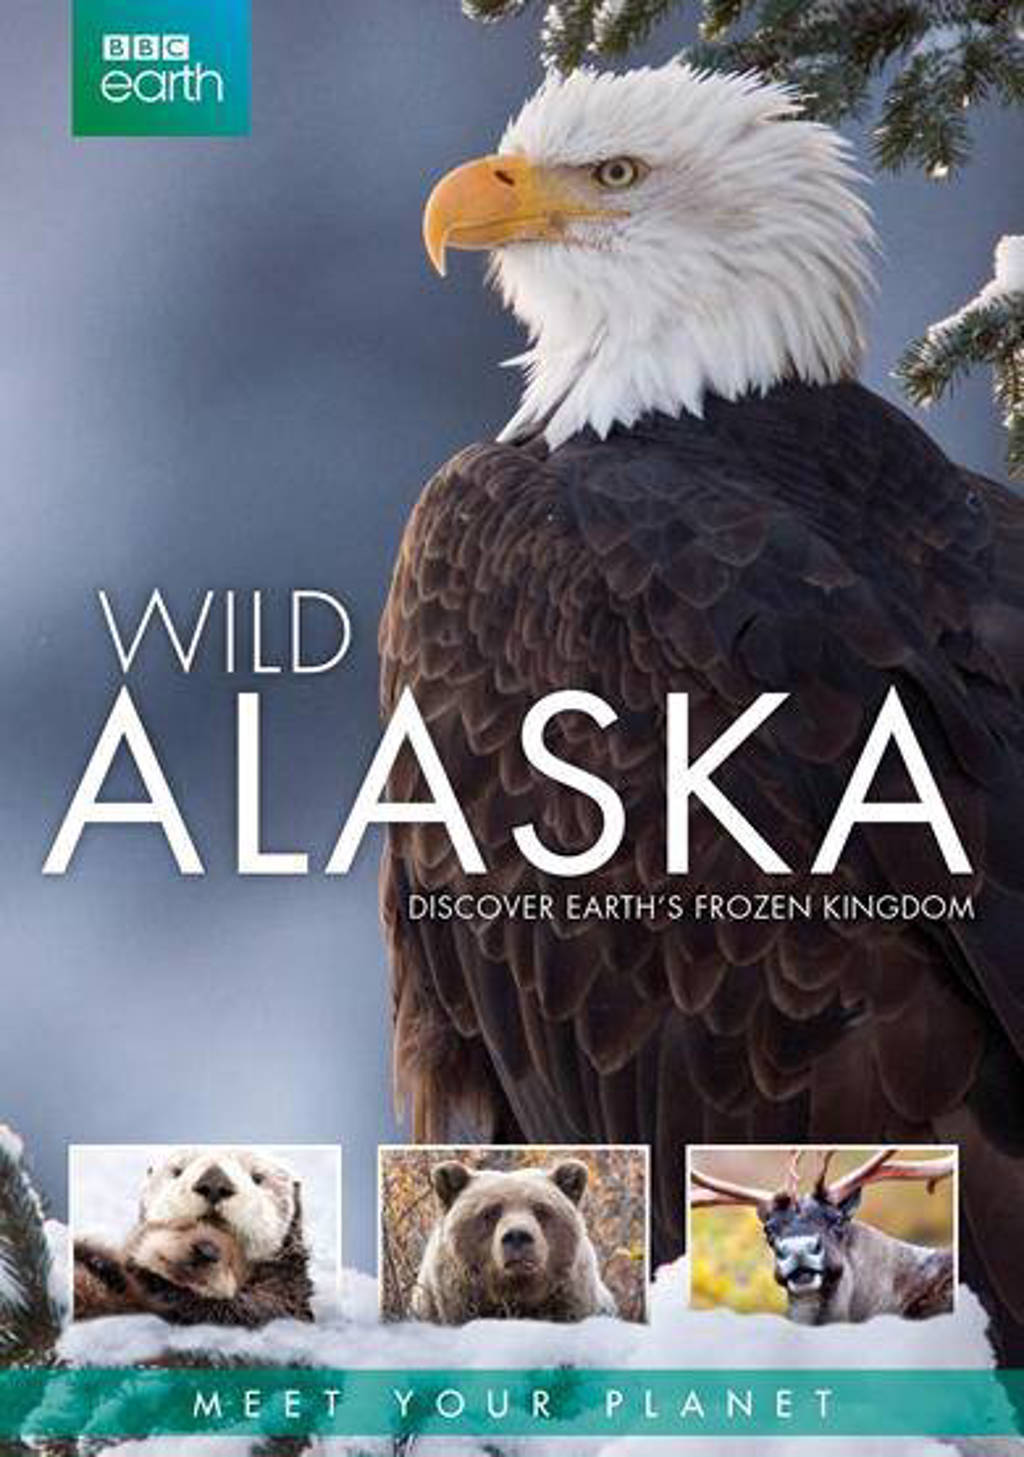 BBC earth - Wild Alaska (DVD)